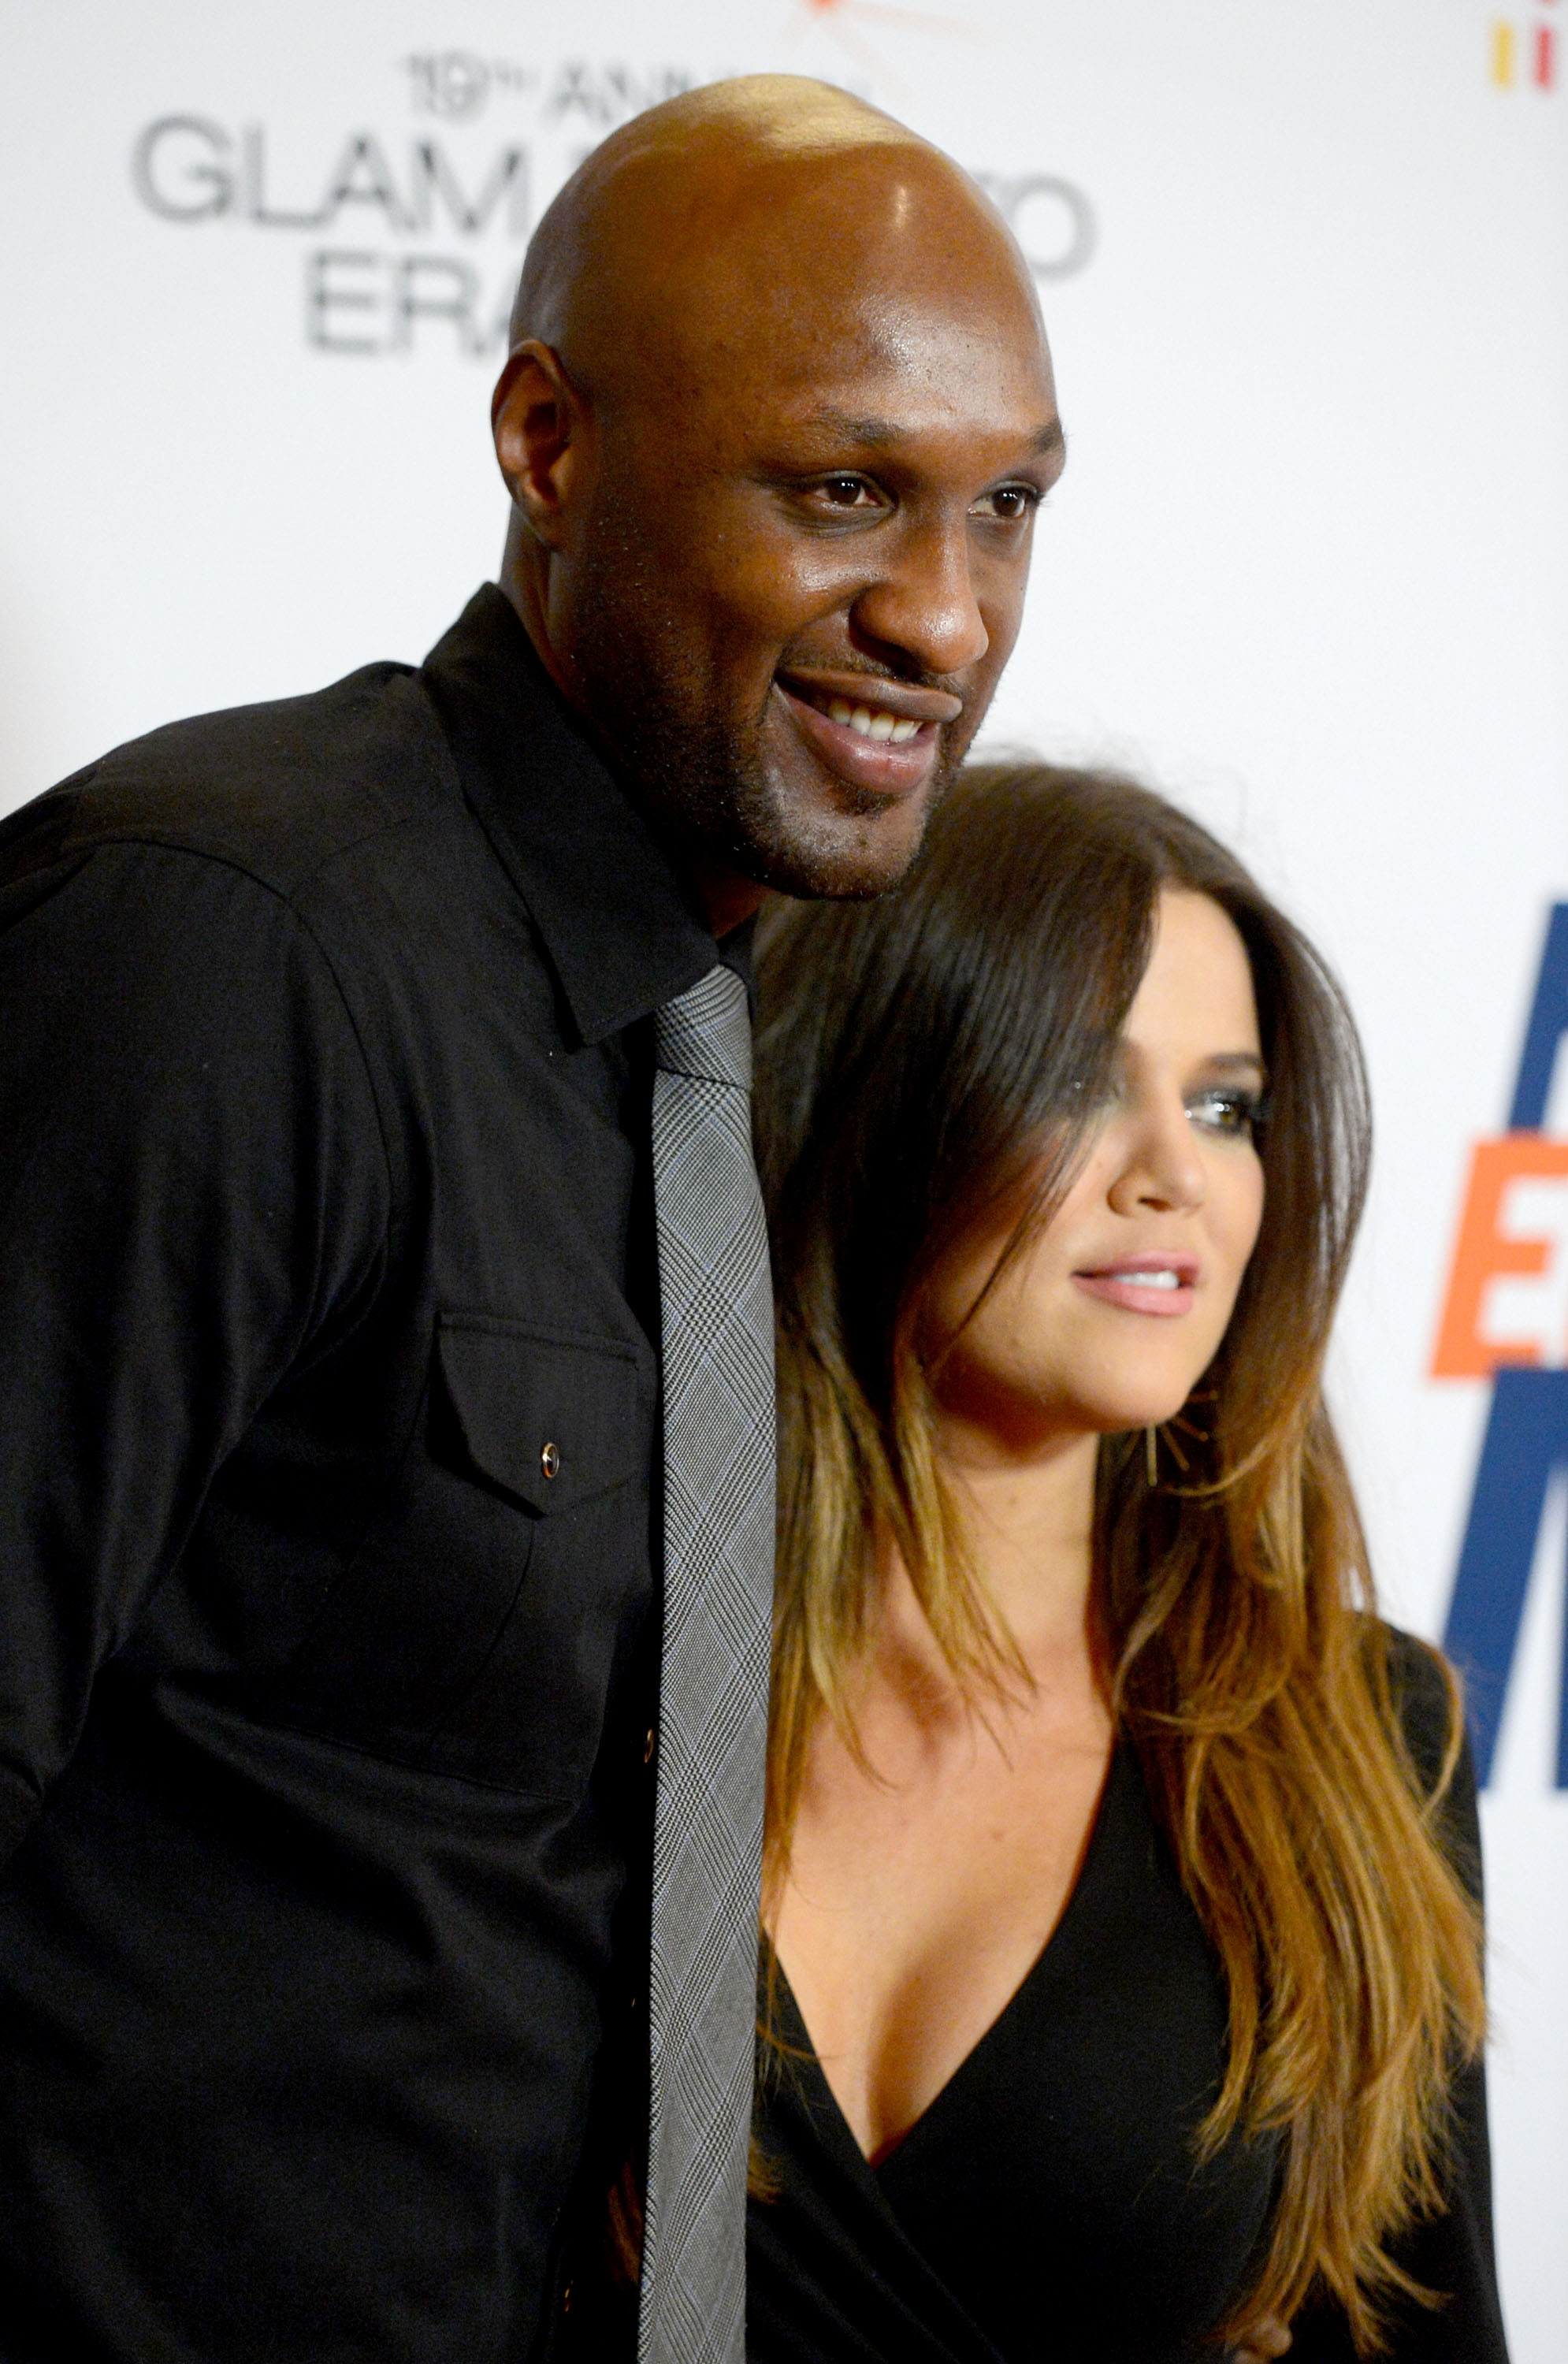 Kim Kardashian Had To Explain Who Caitlyn Jenner Was To Lamar Odom GettyImages 144762596